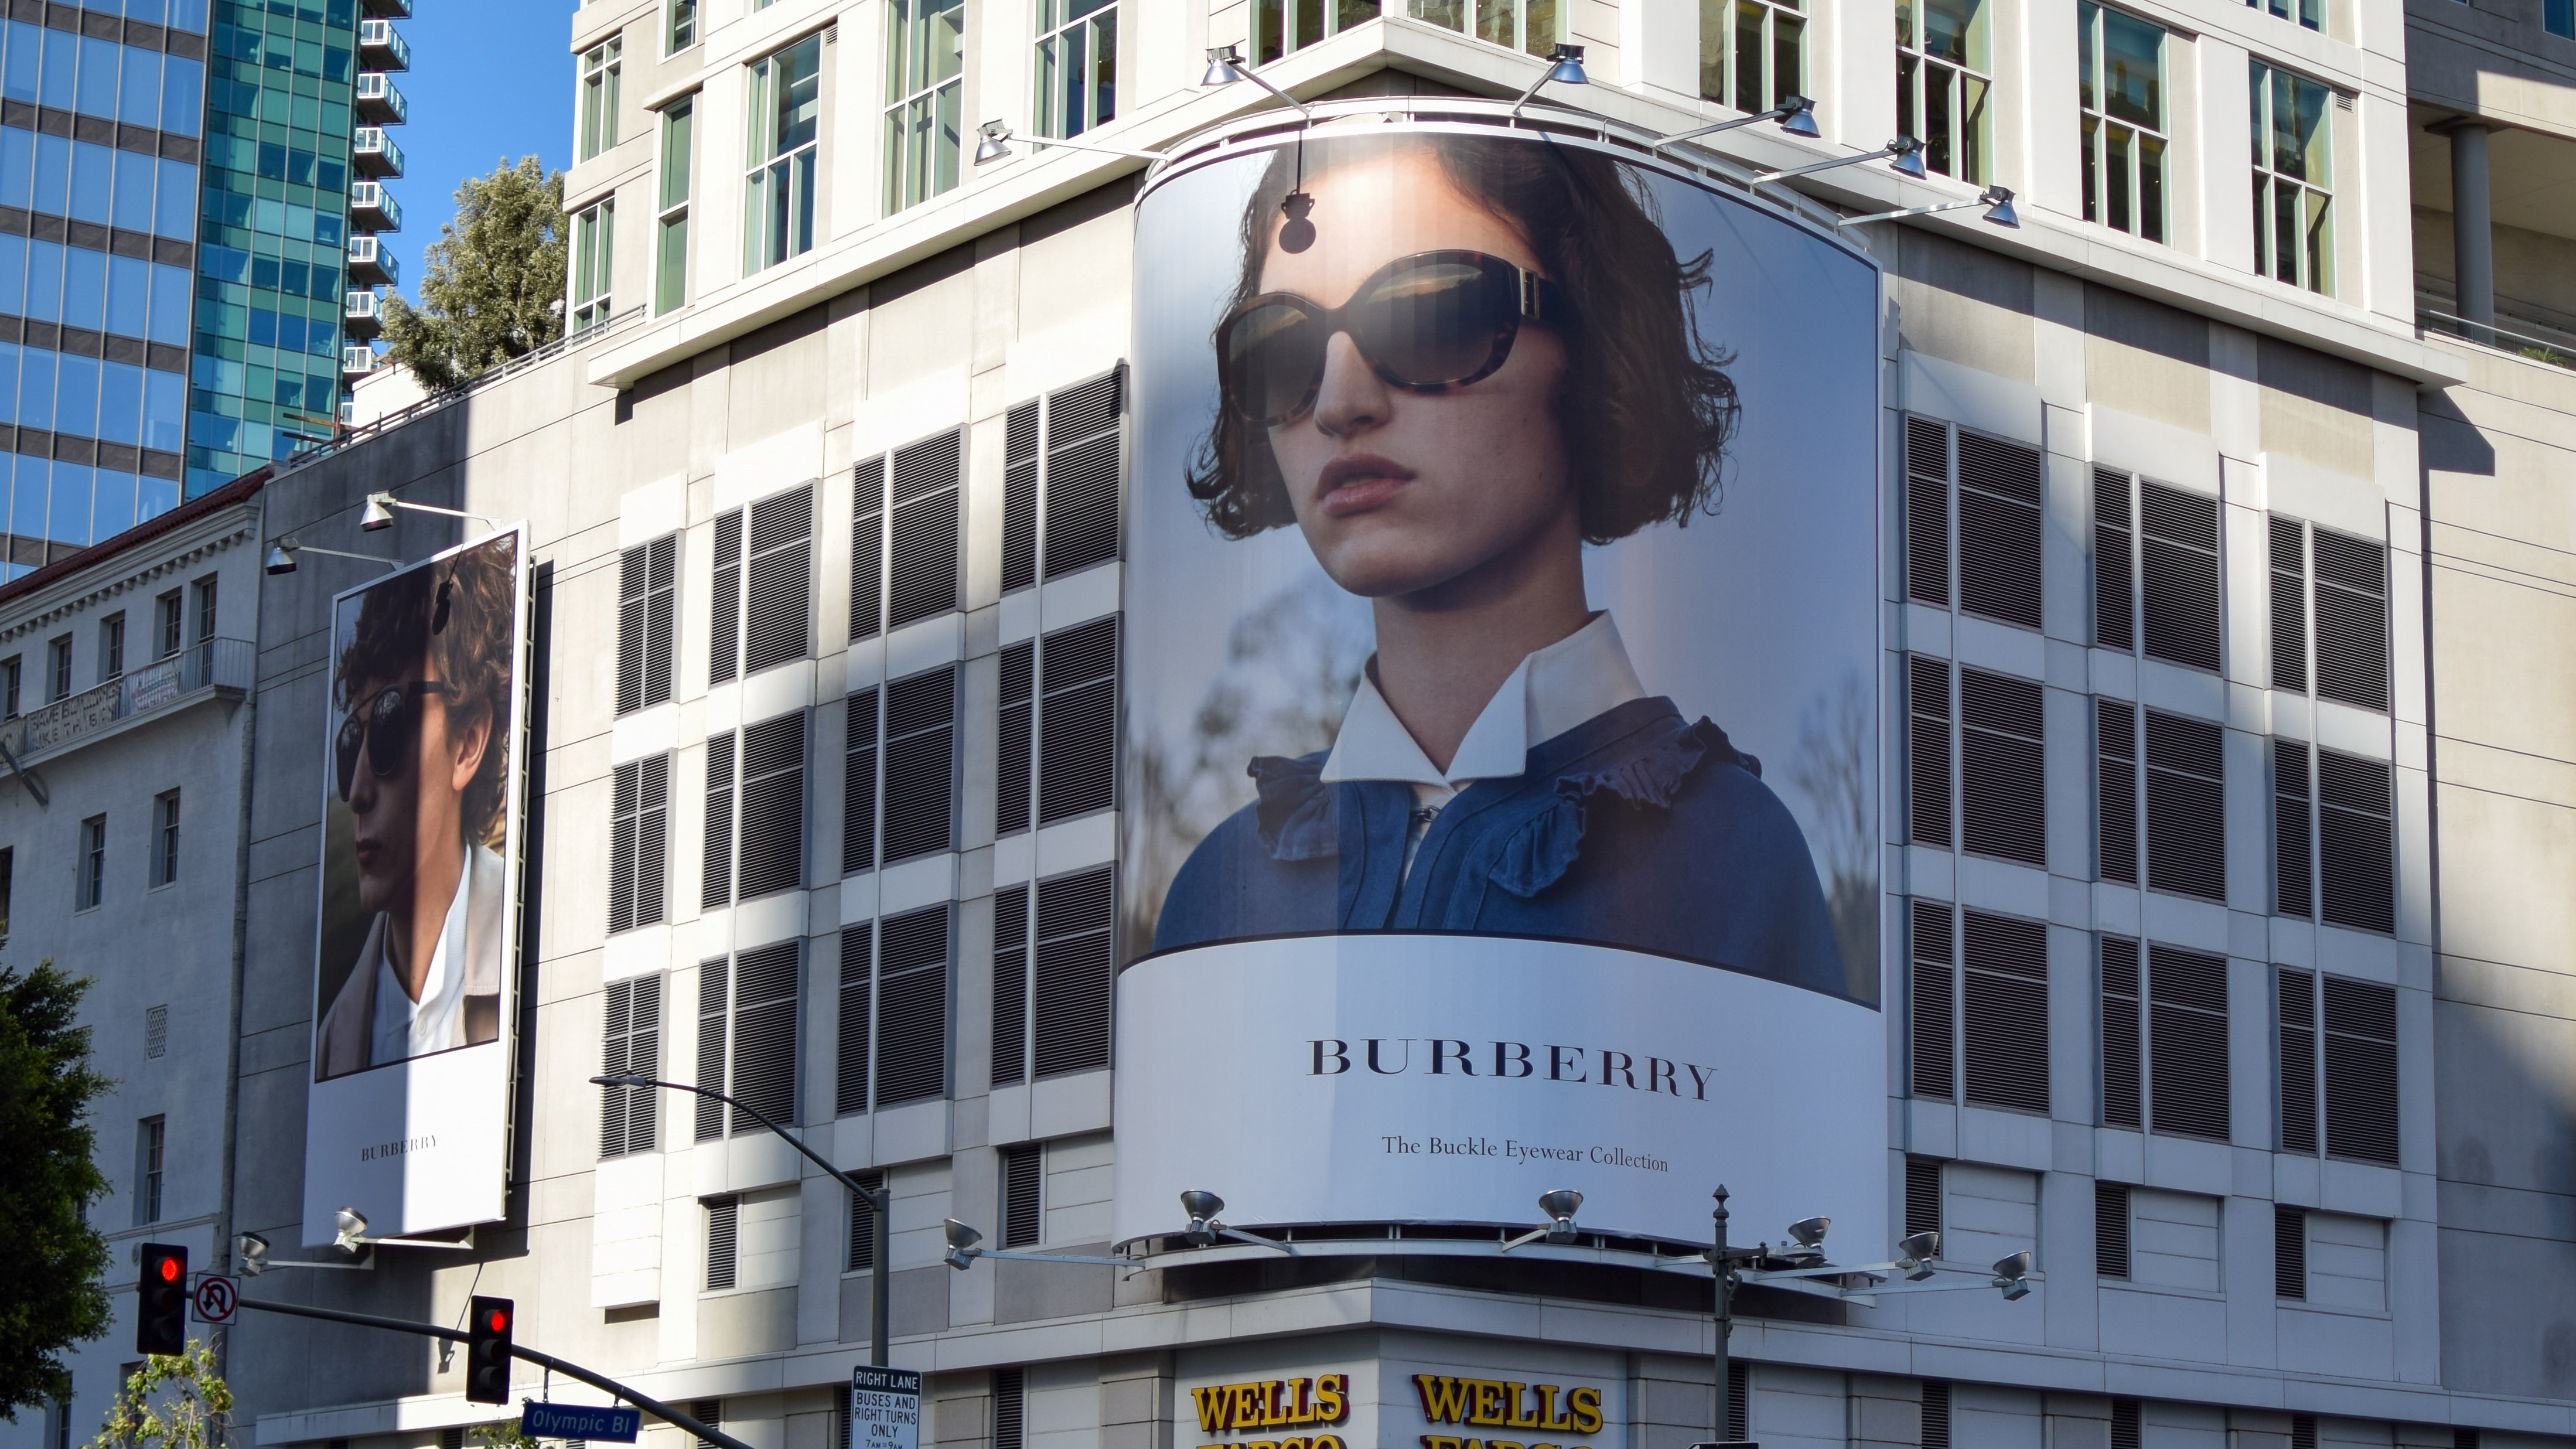 International Marketing News: Digital Investment Growth in Latin America and Brand Value Lessons to be Learnt from Burberry's Recent Troubles